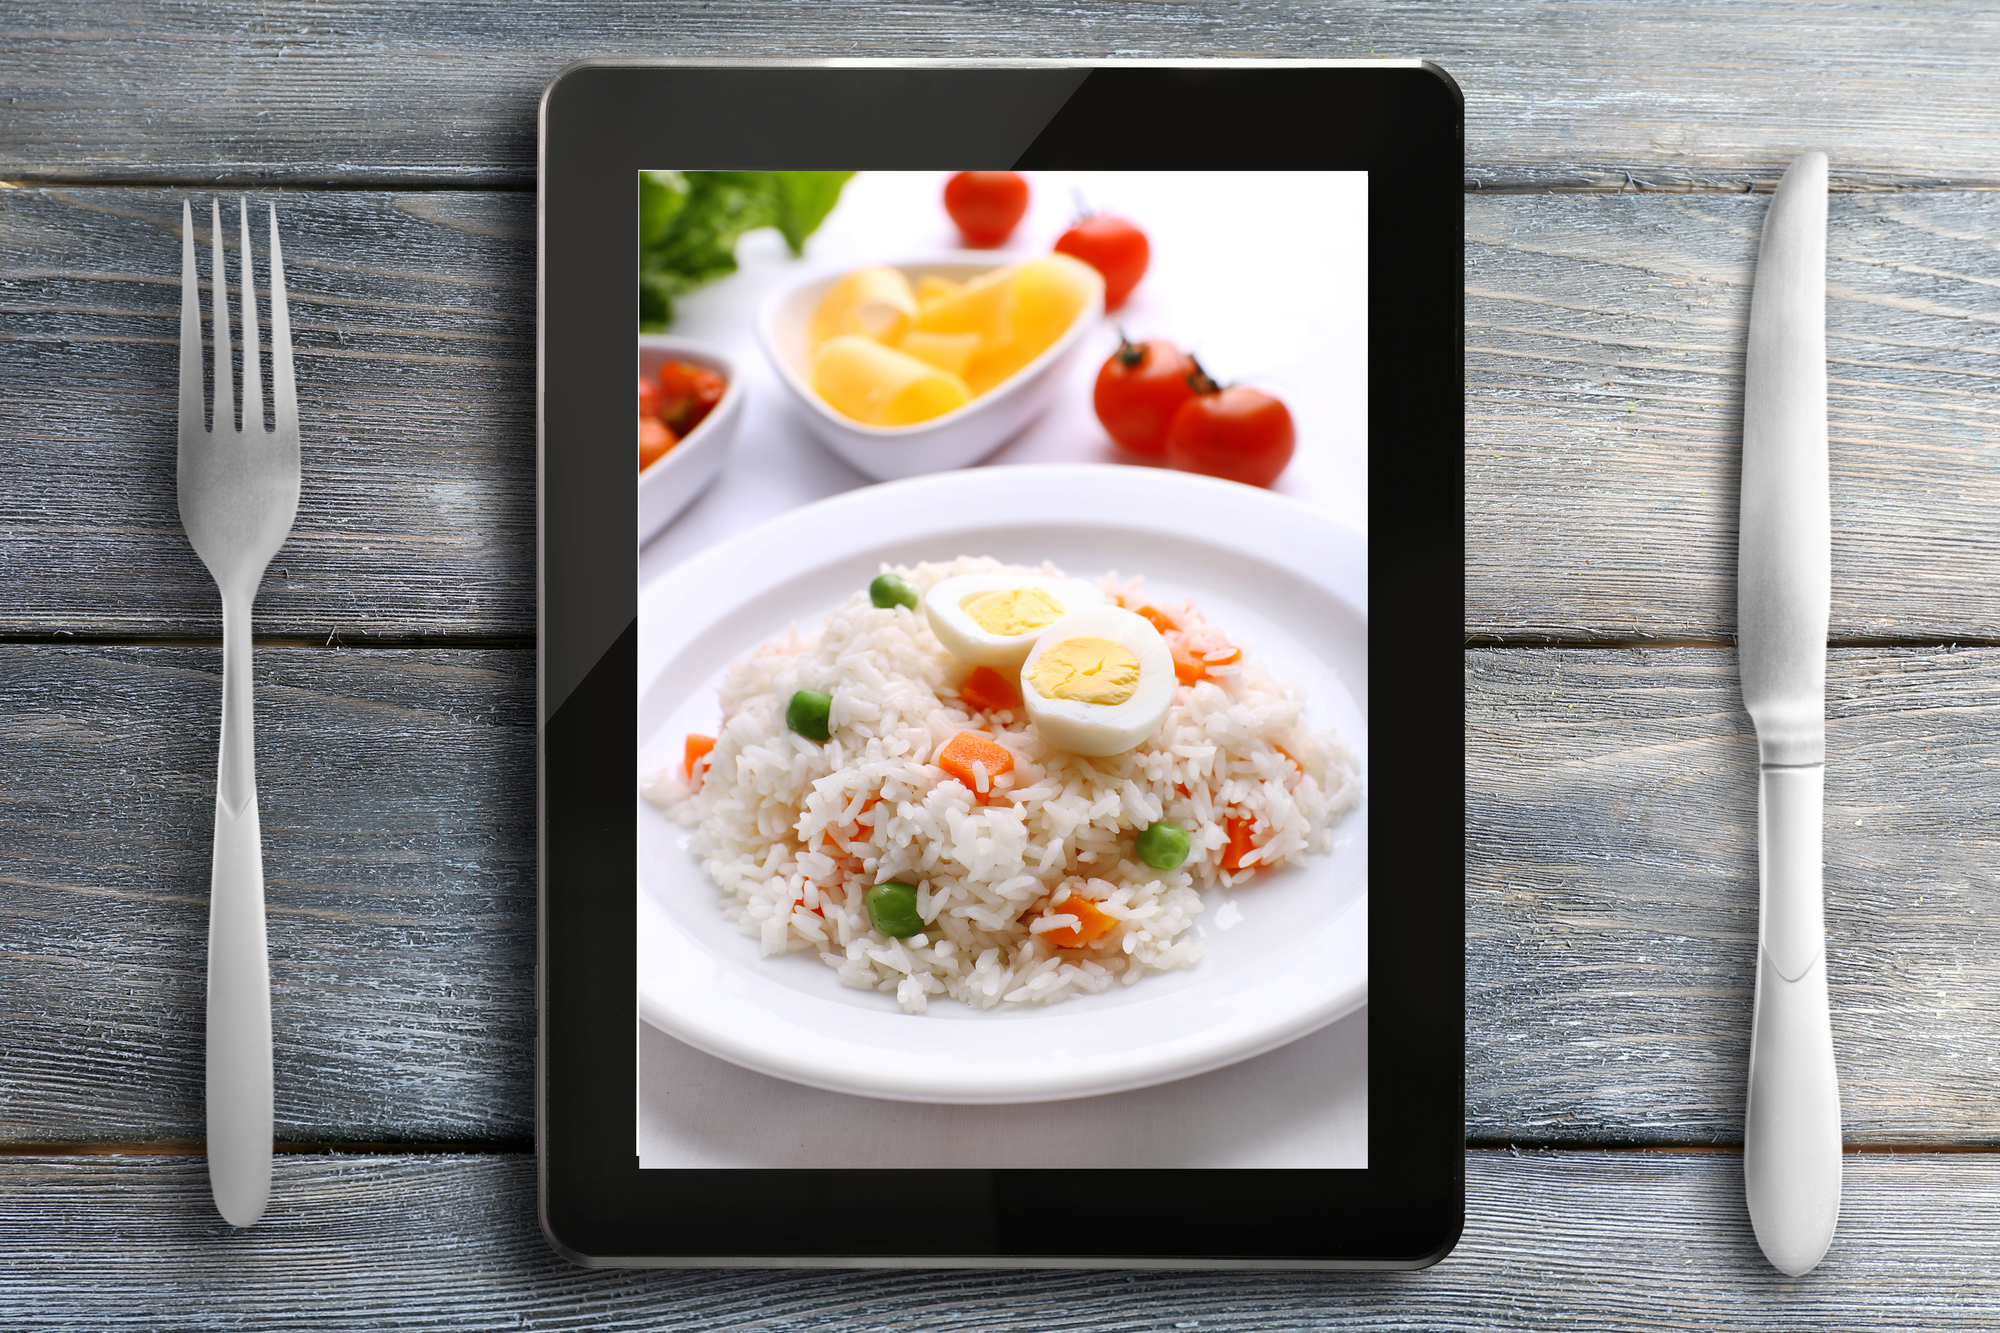 Picture of a rice dish on a tablet